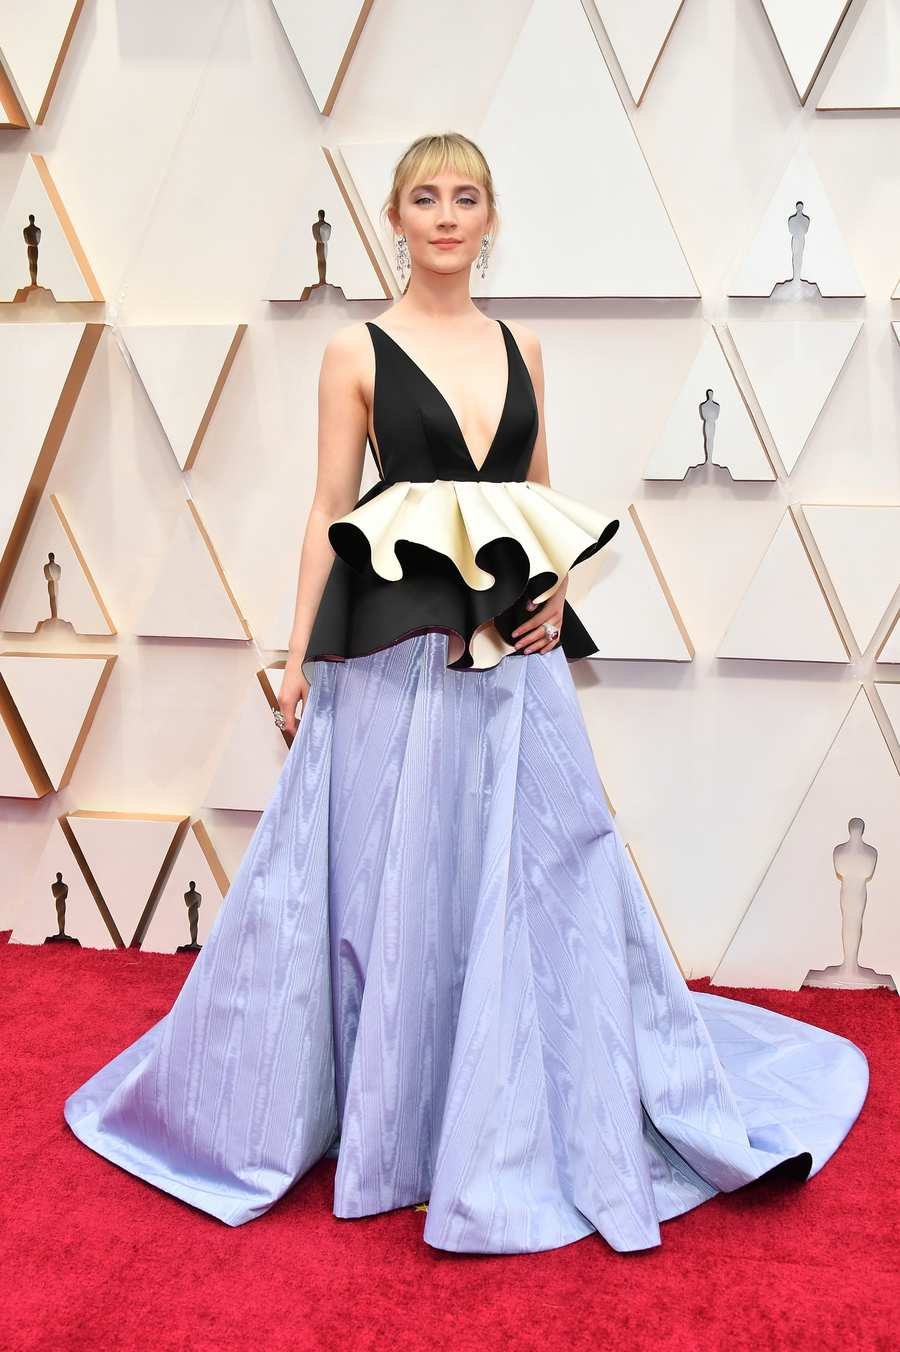 See All The 2020 Oscars Red Carpet Looks In 2020 Nice Dresses Red Carpet Fashion Red Carpet Oscars